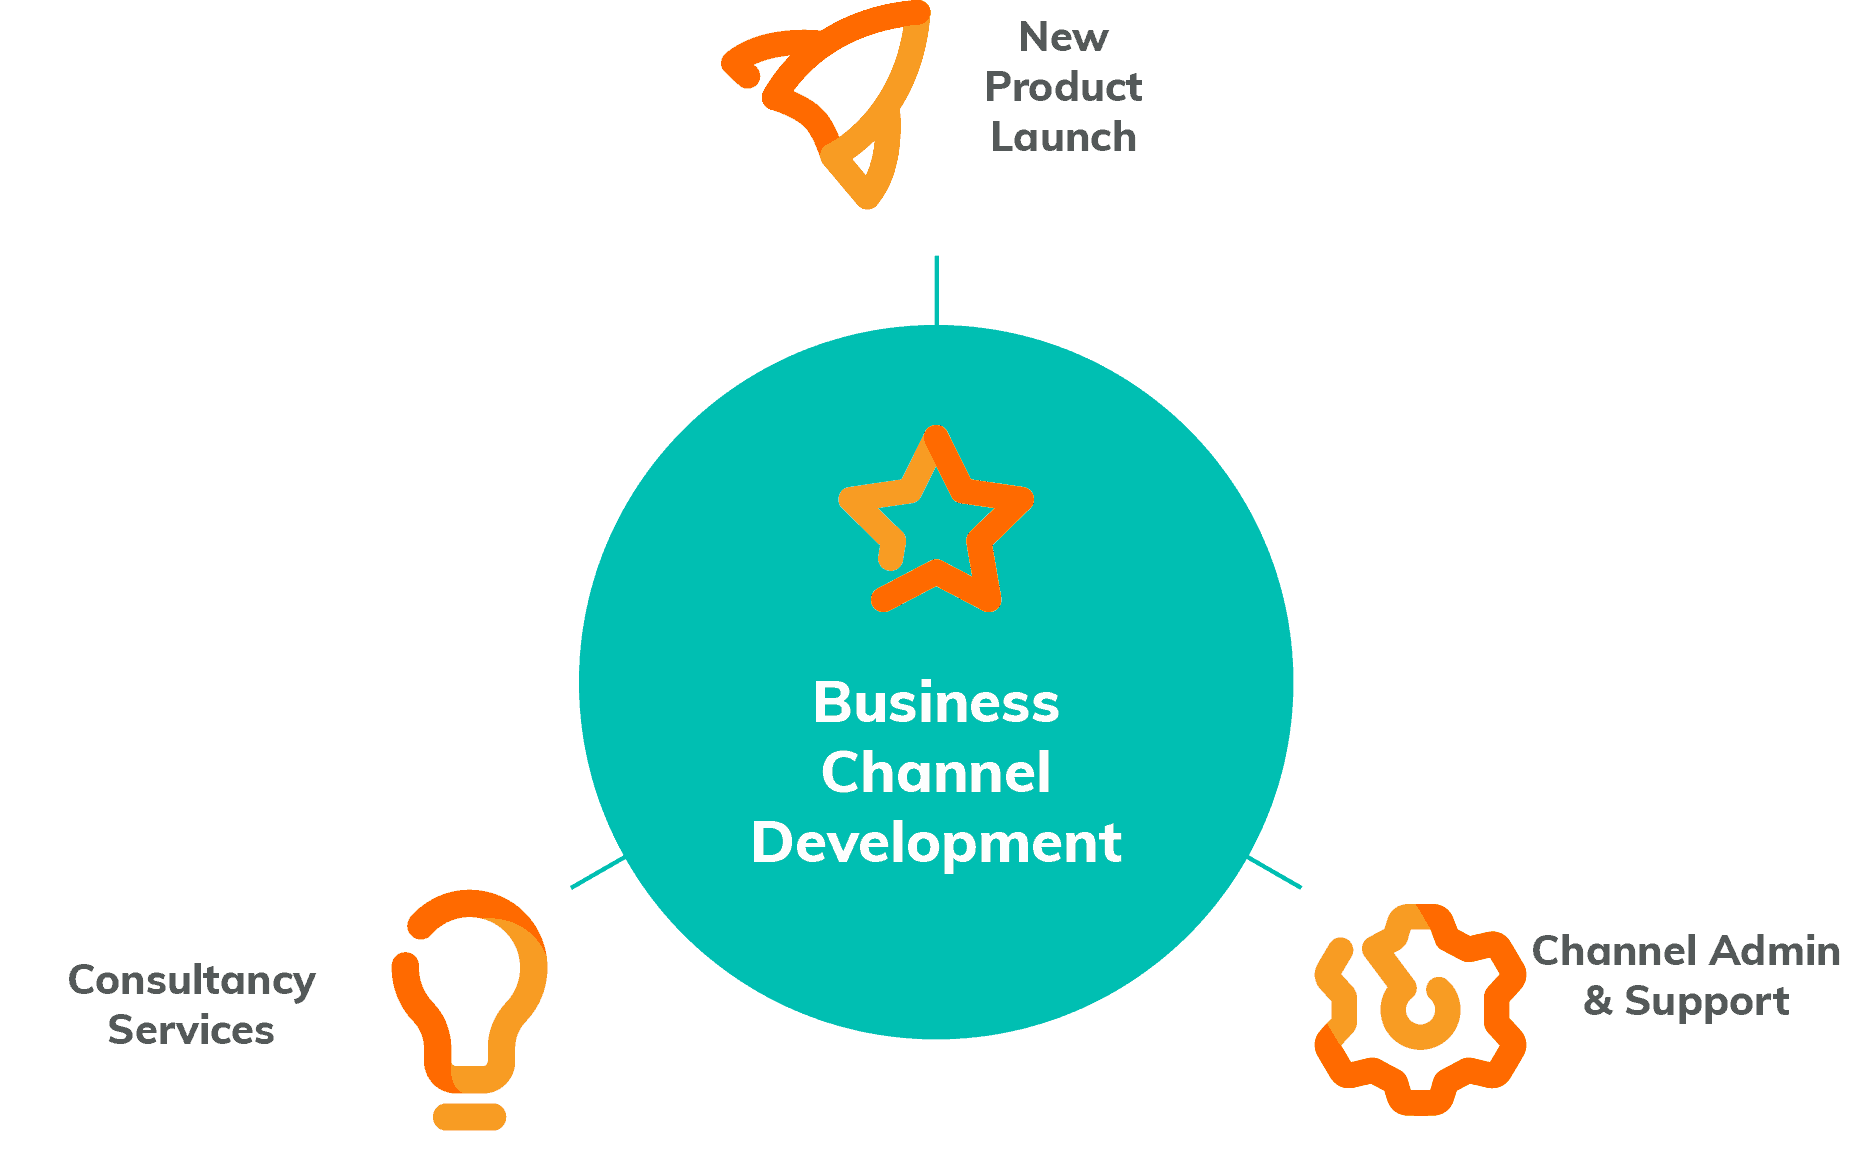 Business Channel Development: New Product Launch | Channel Admin & Support | Consultancy Services